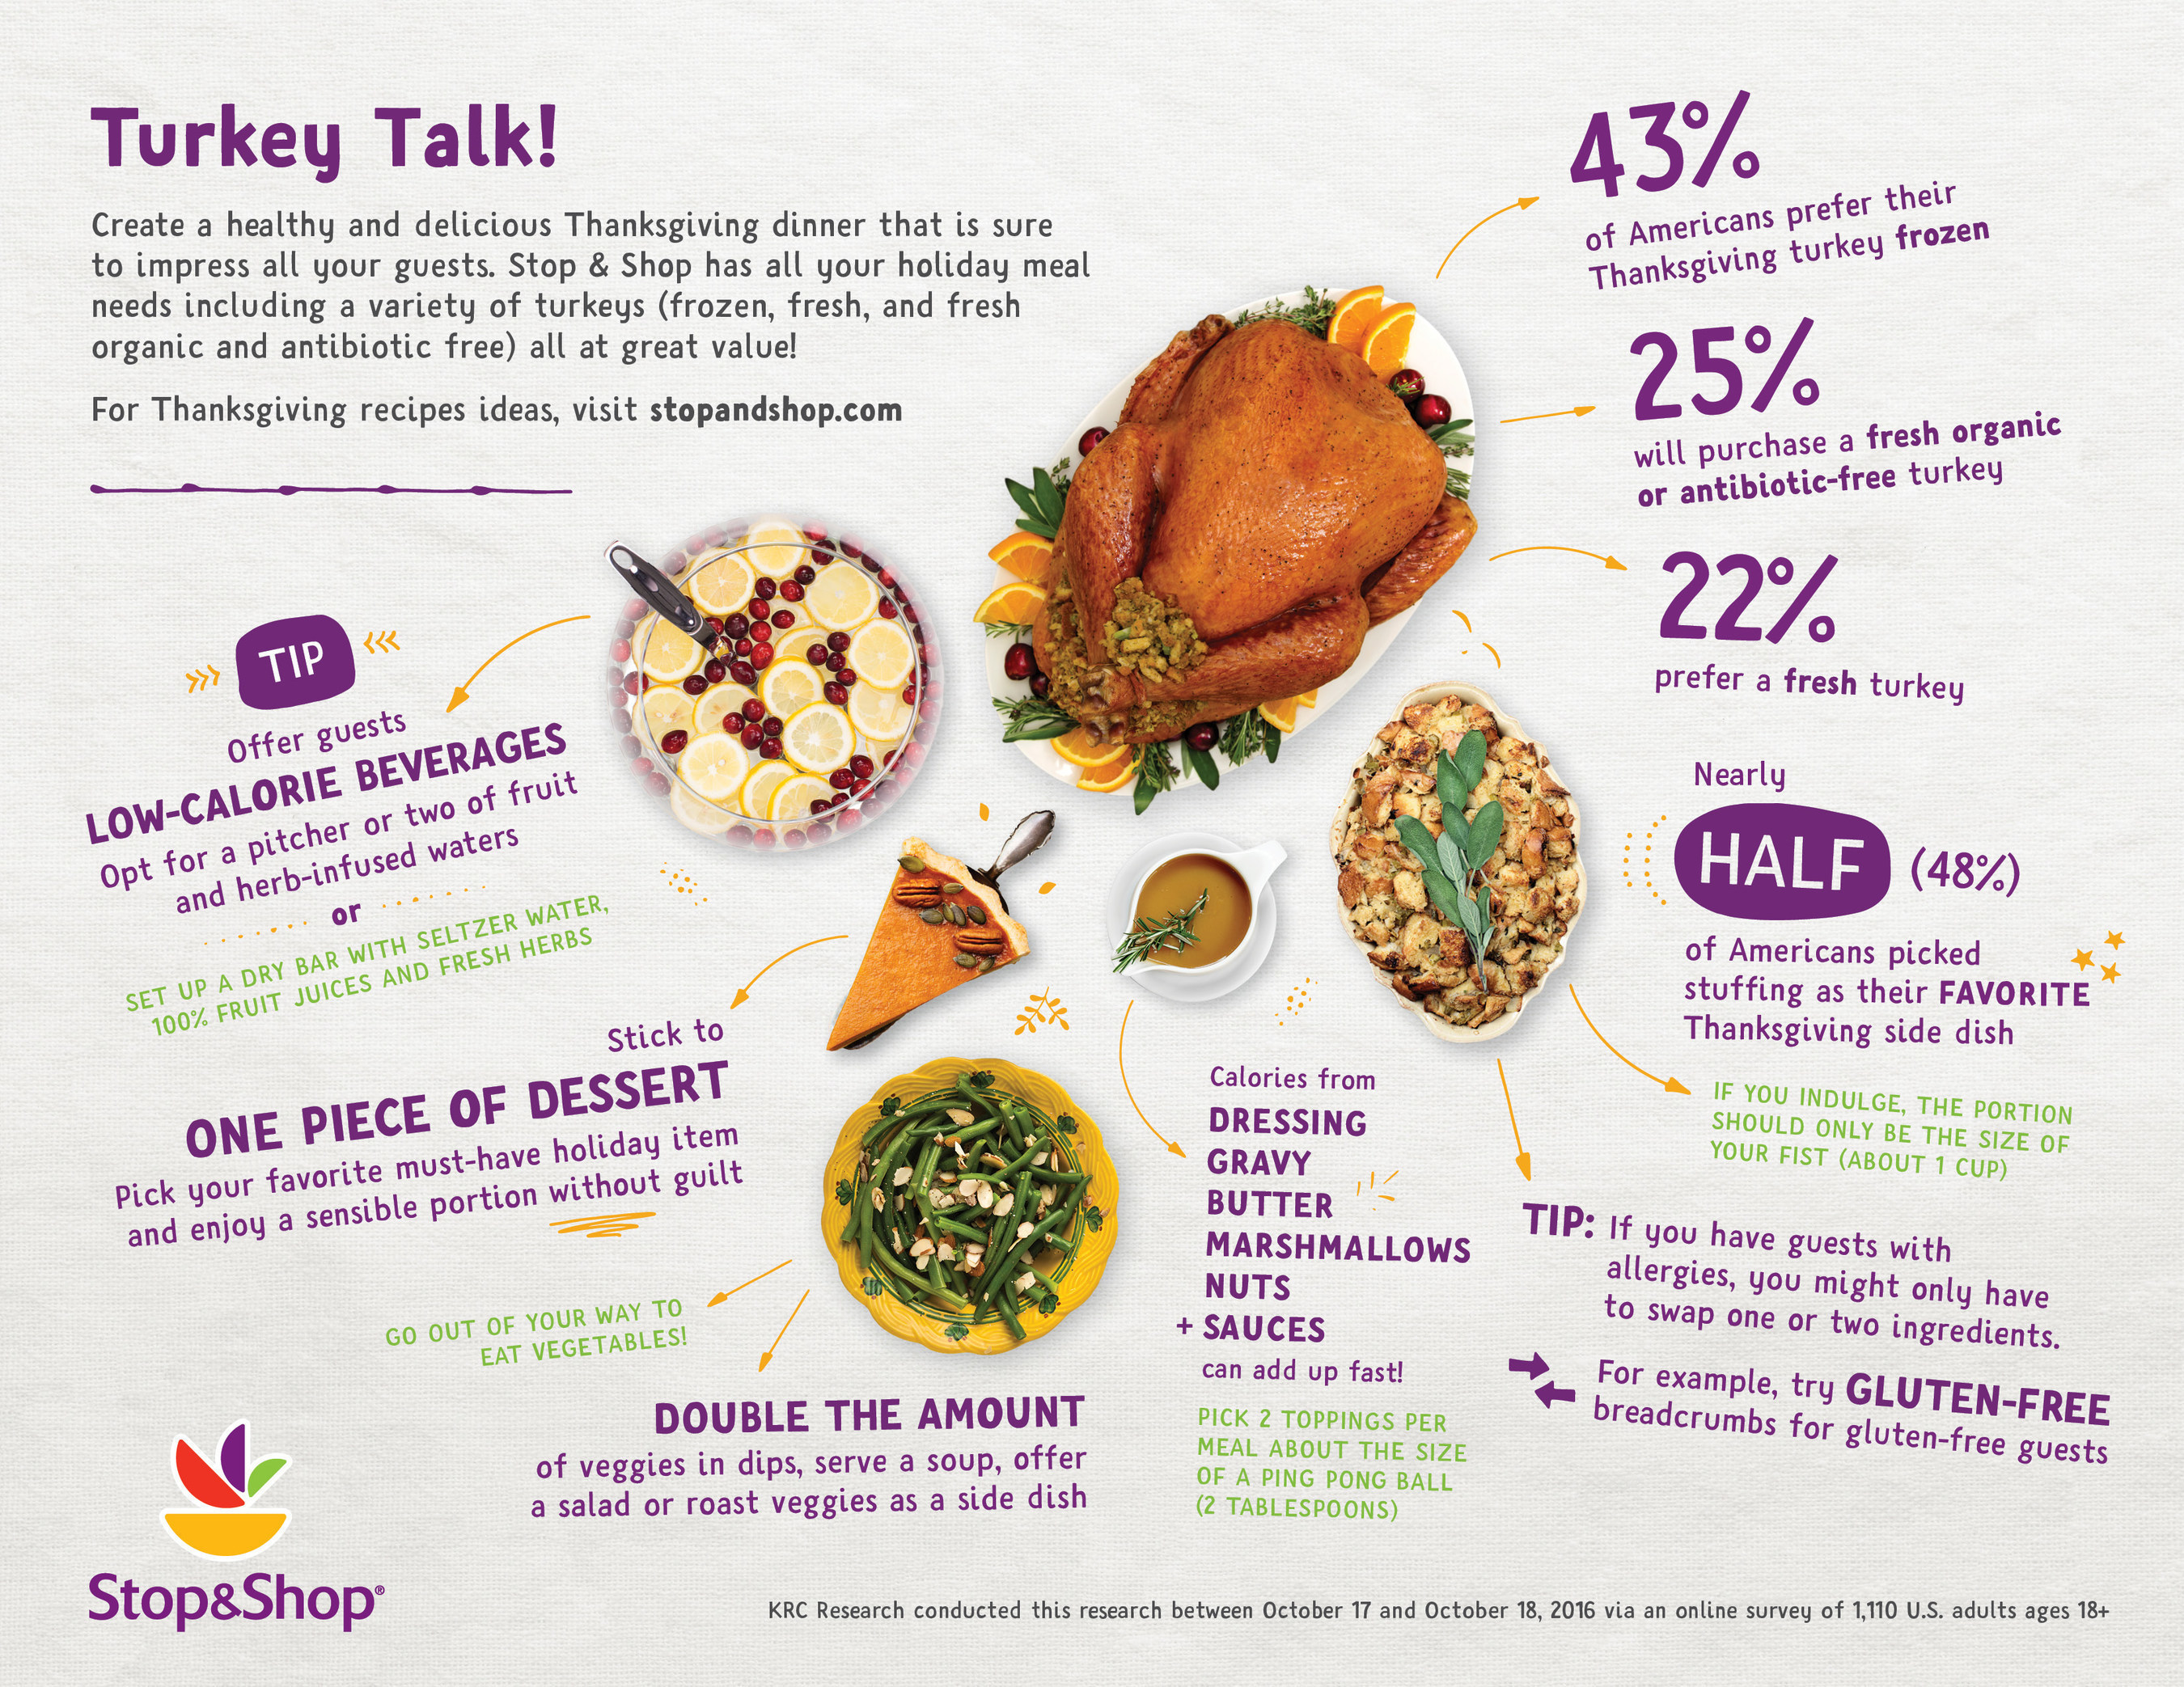 Stop & Shop has all of your holiday meal needs including a variety of turkeys (frozen, fresh, and fresh organic and antibiotic free). For Thanksgiving recipe ideas visit www.stopandshop.com.